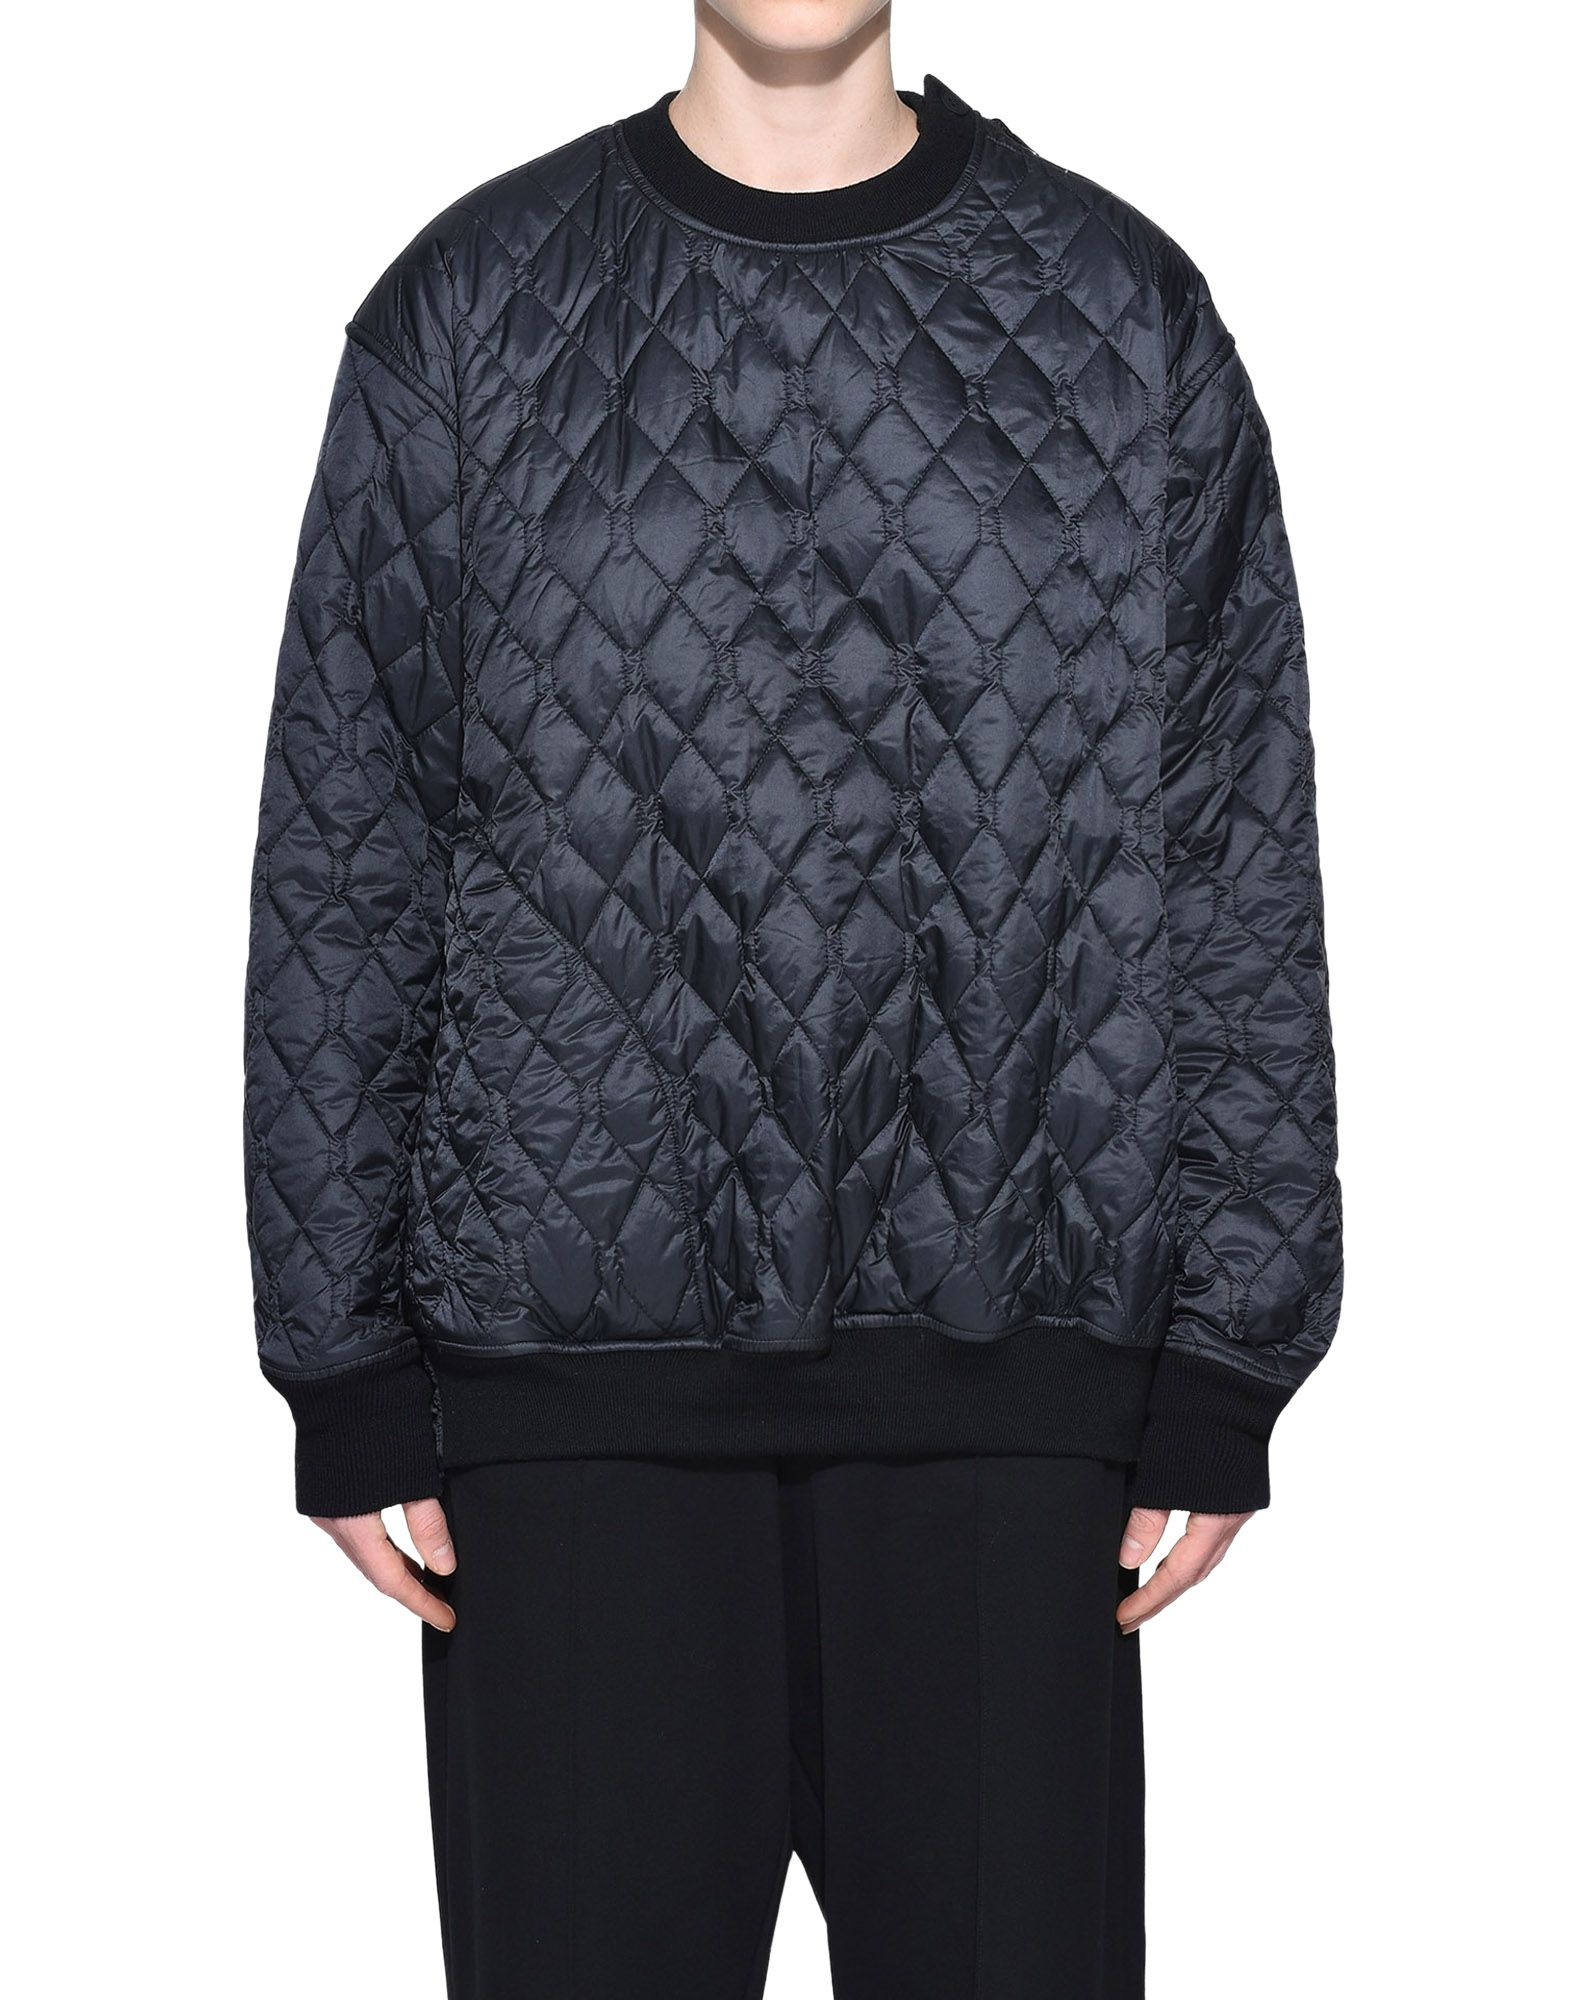 Y-3 Y-3 Quilted Sweater Sweatshirt Woman r